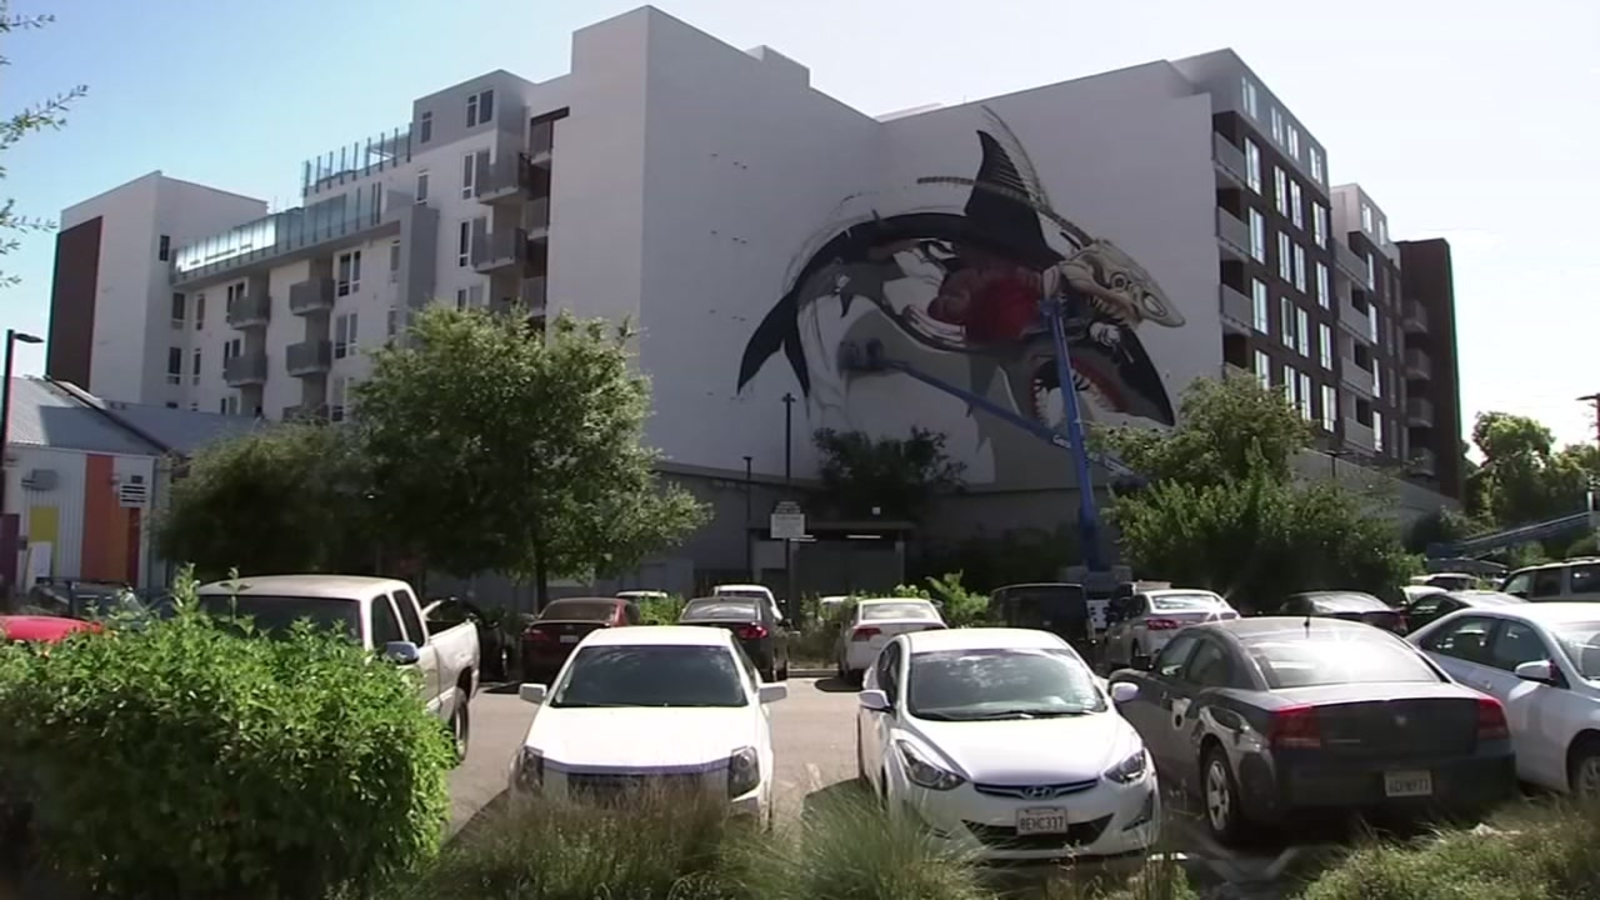 Artist known as 'Nychos' creates massive mural marking Sharks Territory in San Jose